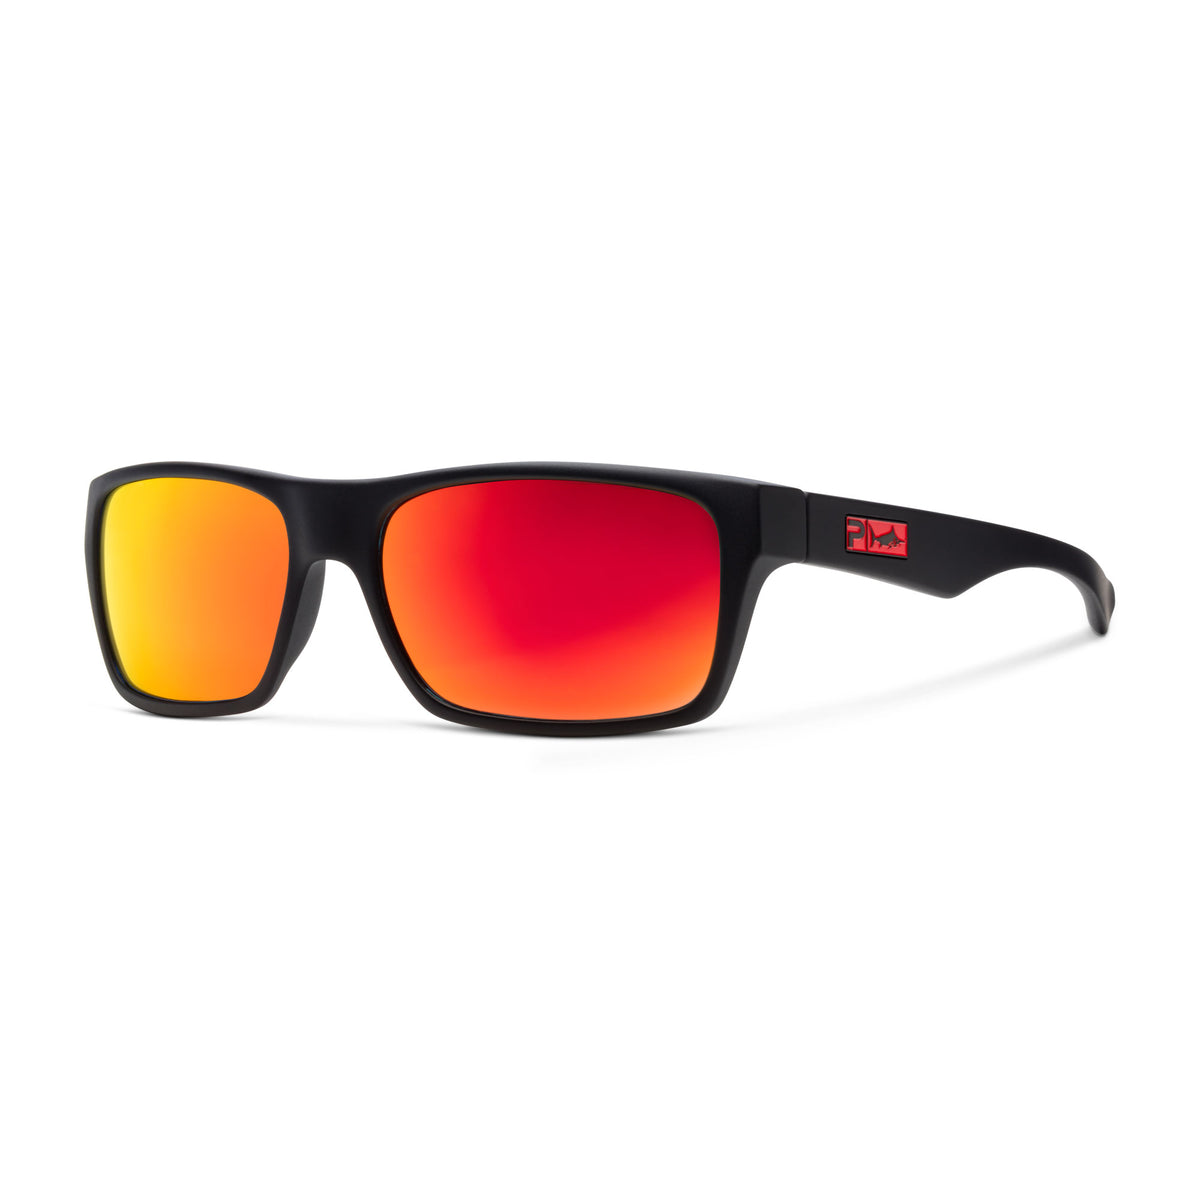 Fish Taco - Polarized XP-700™ Polycarbonate Lens Big Image - 4